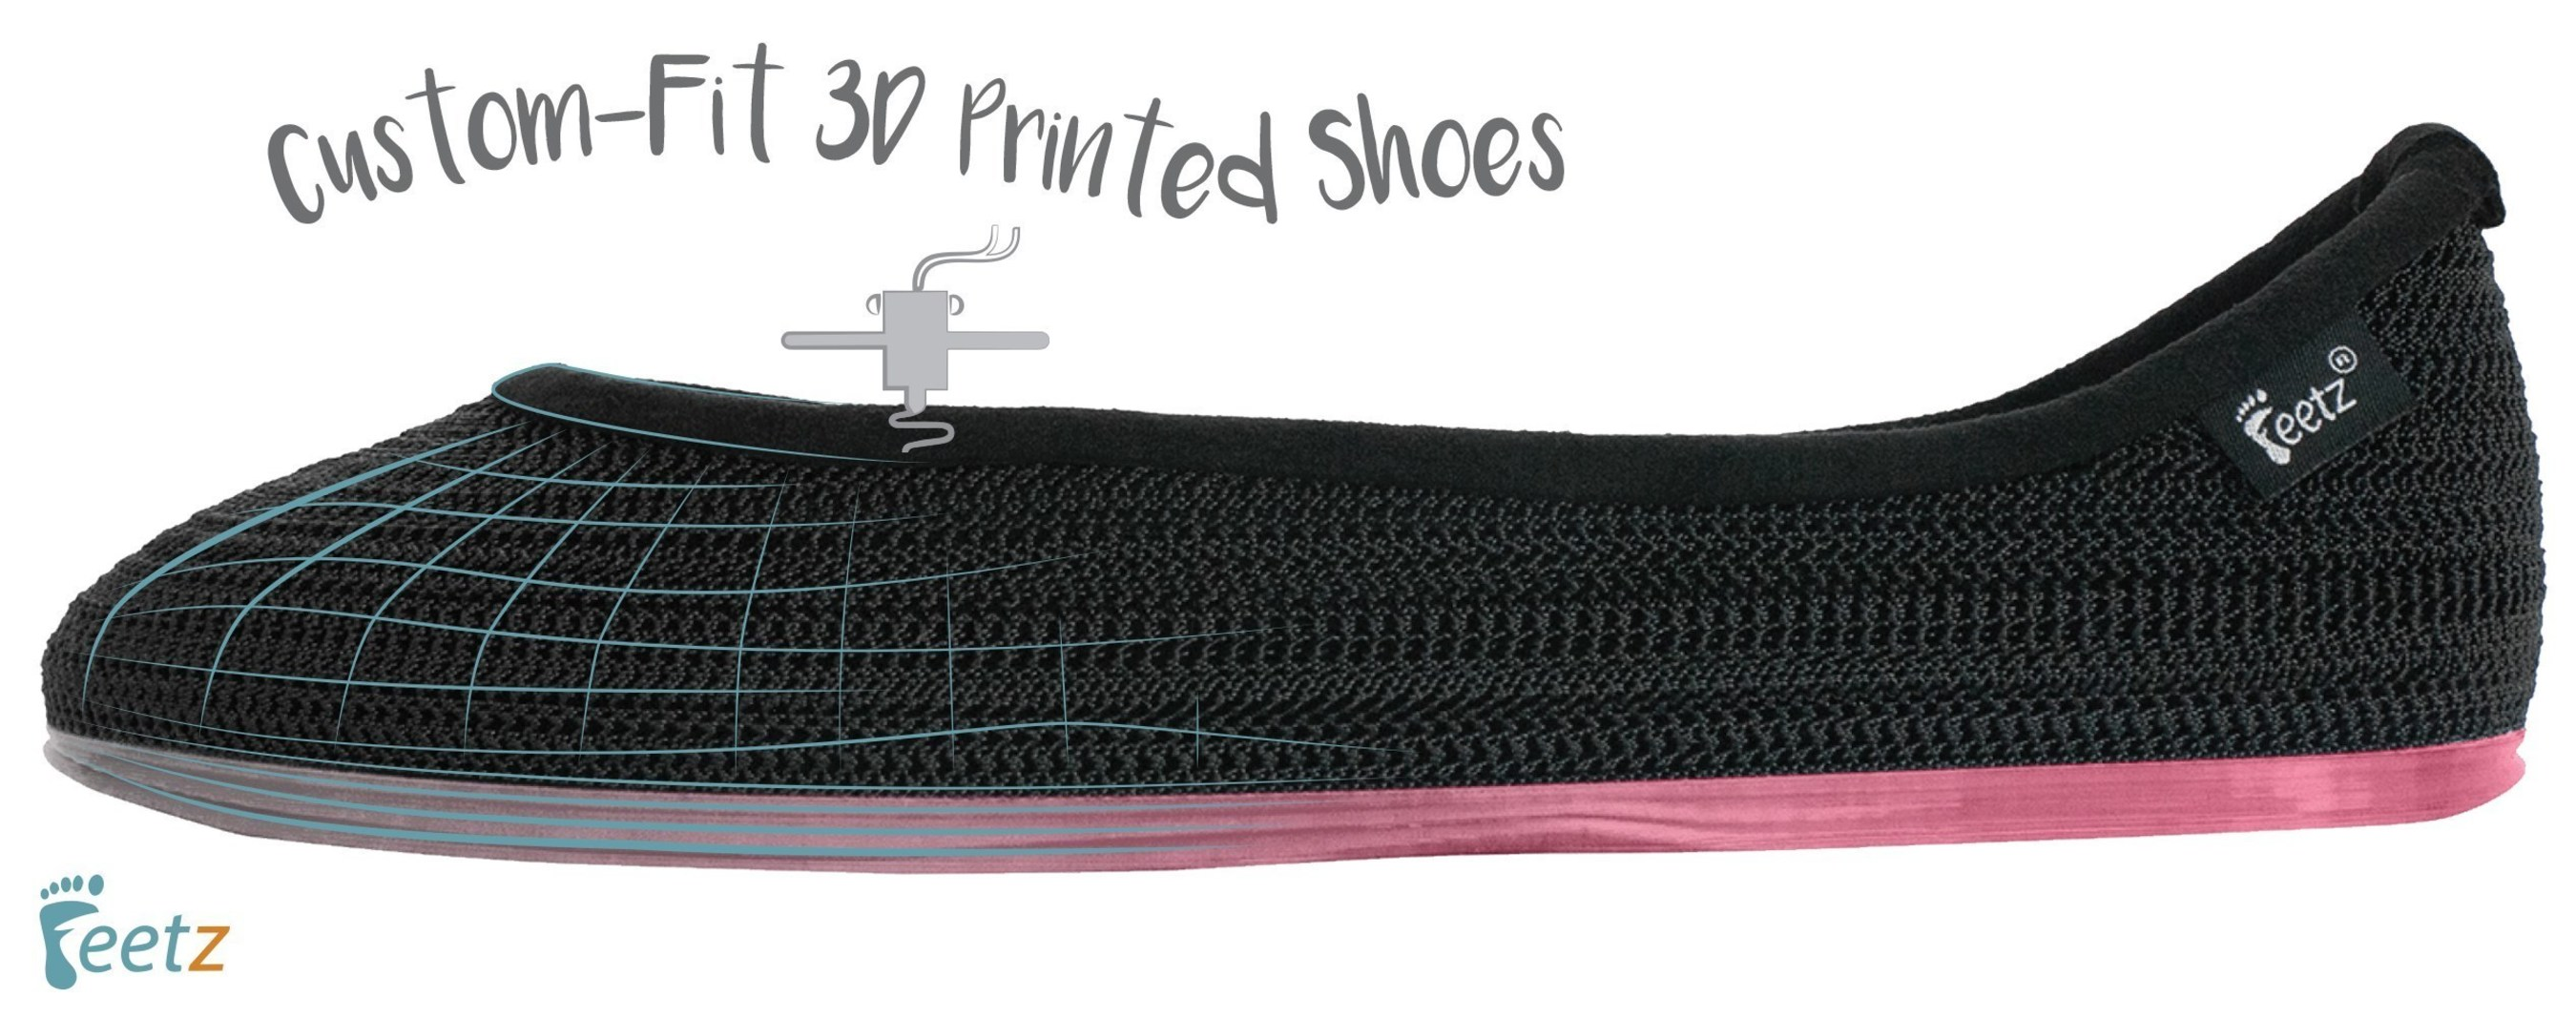 Feetz custom-fit, sustainably made 3D printed shoes.